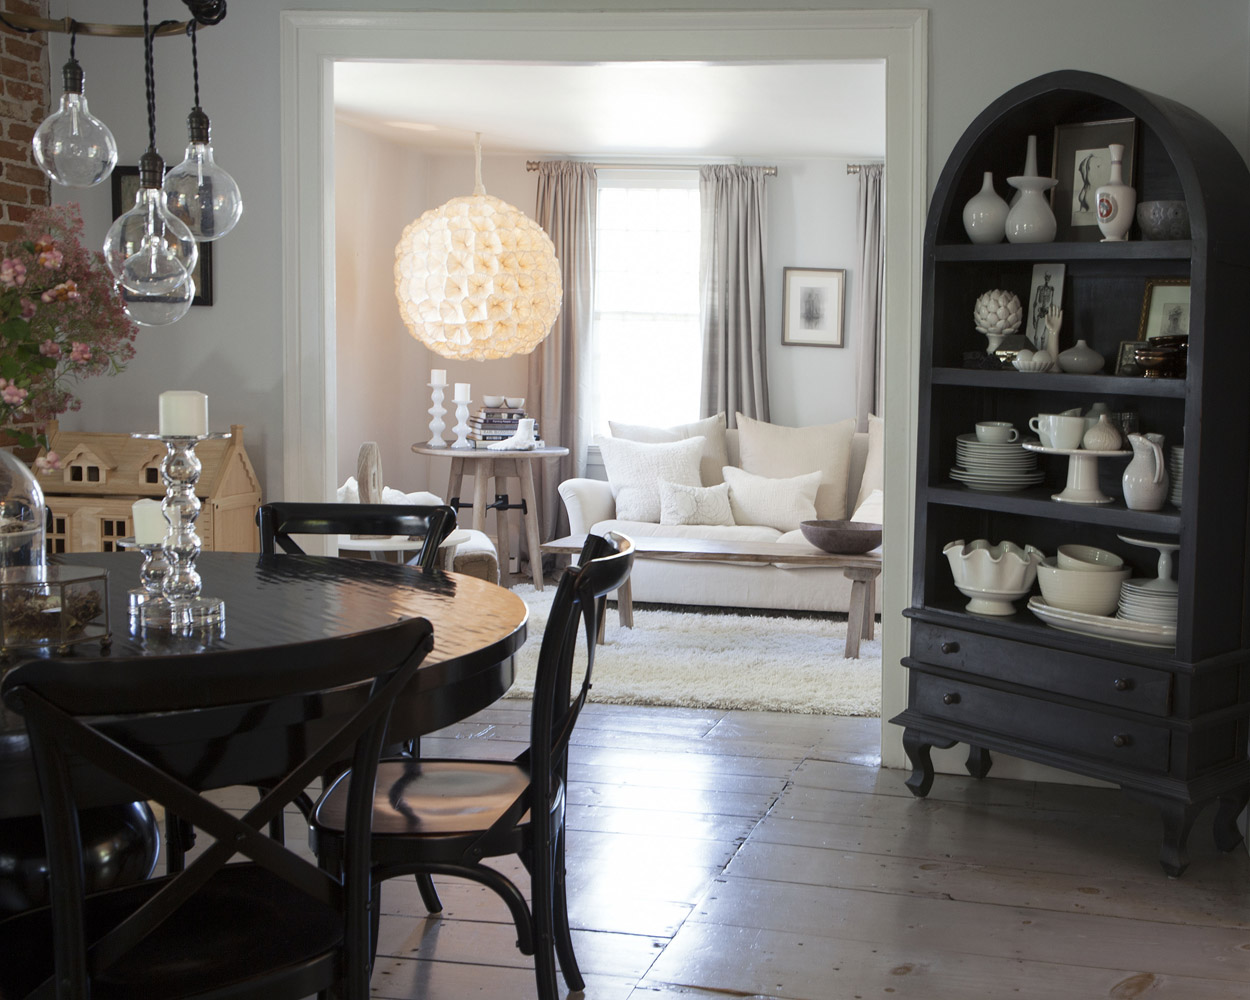 Farrin_West_Hamptons_Interior_Design_Sag_Harbor_Whalers_Cottage_004.jpg